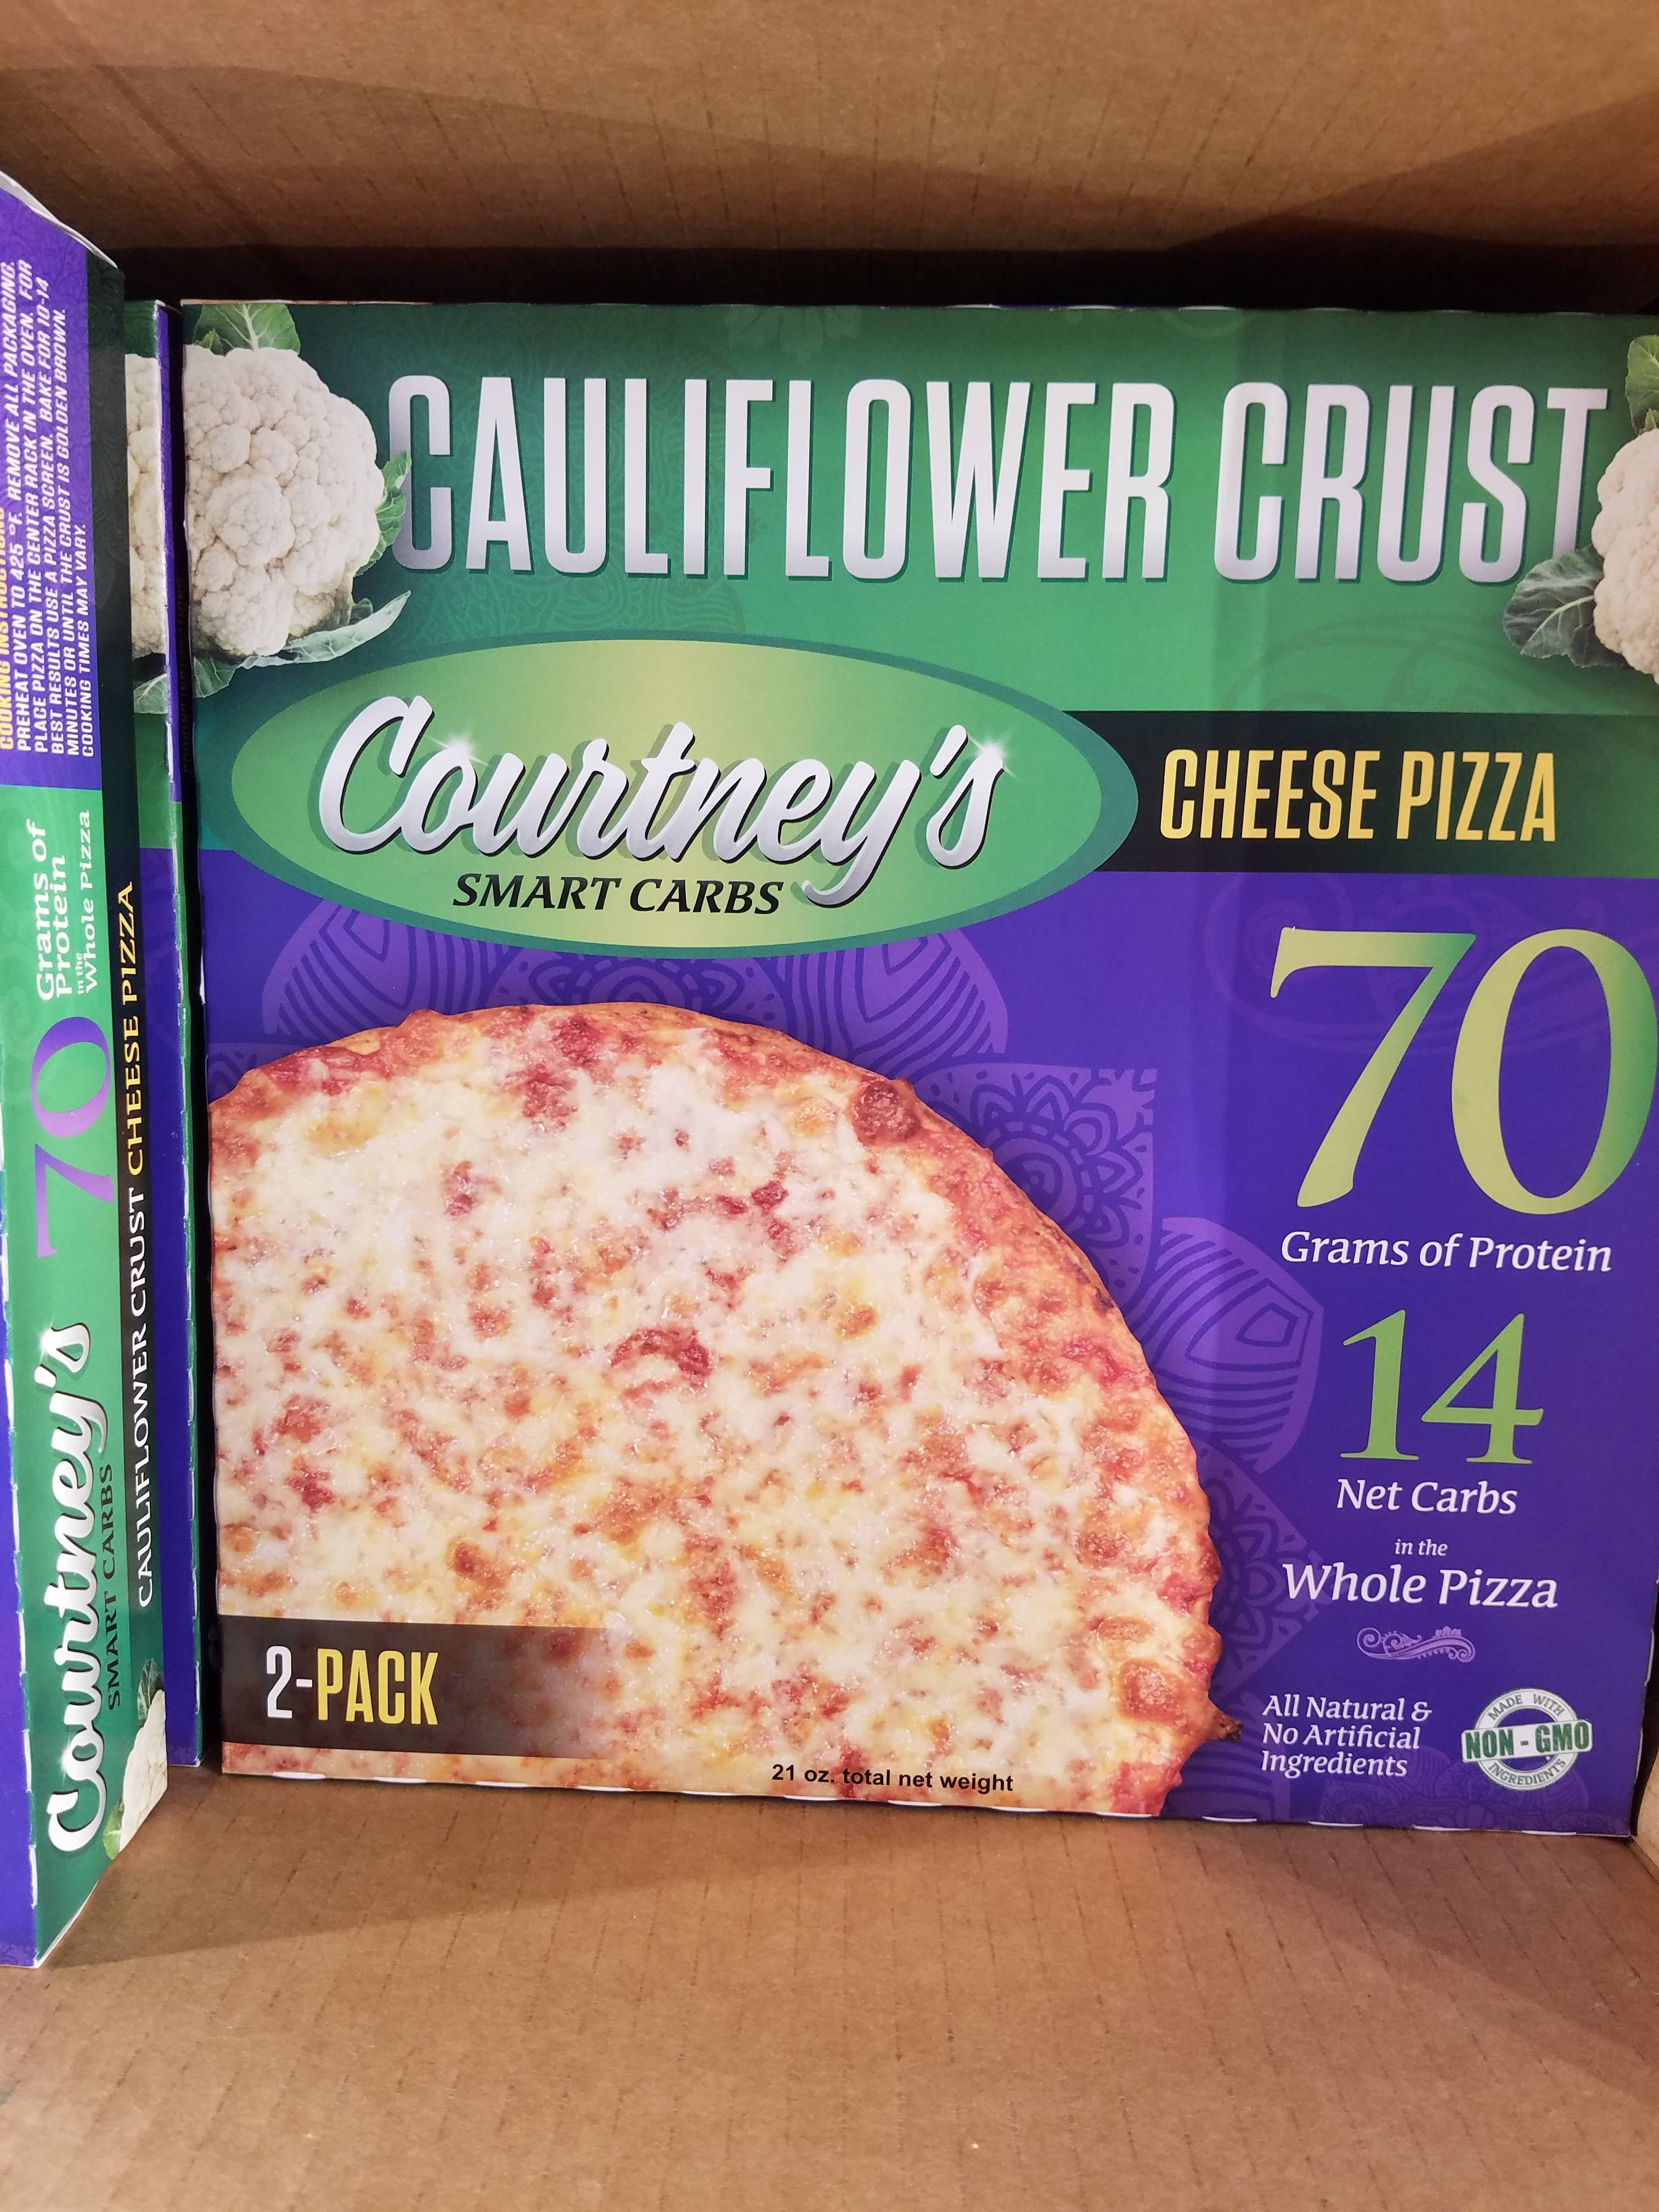 Costco Cauliflower Pizza  Spotted this frozen cauliflower pizza at Costco keto